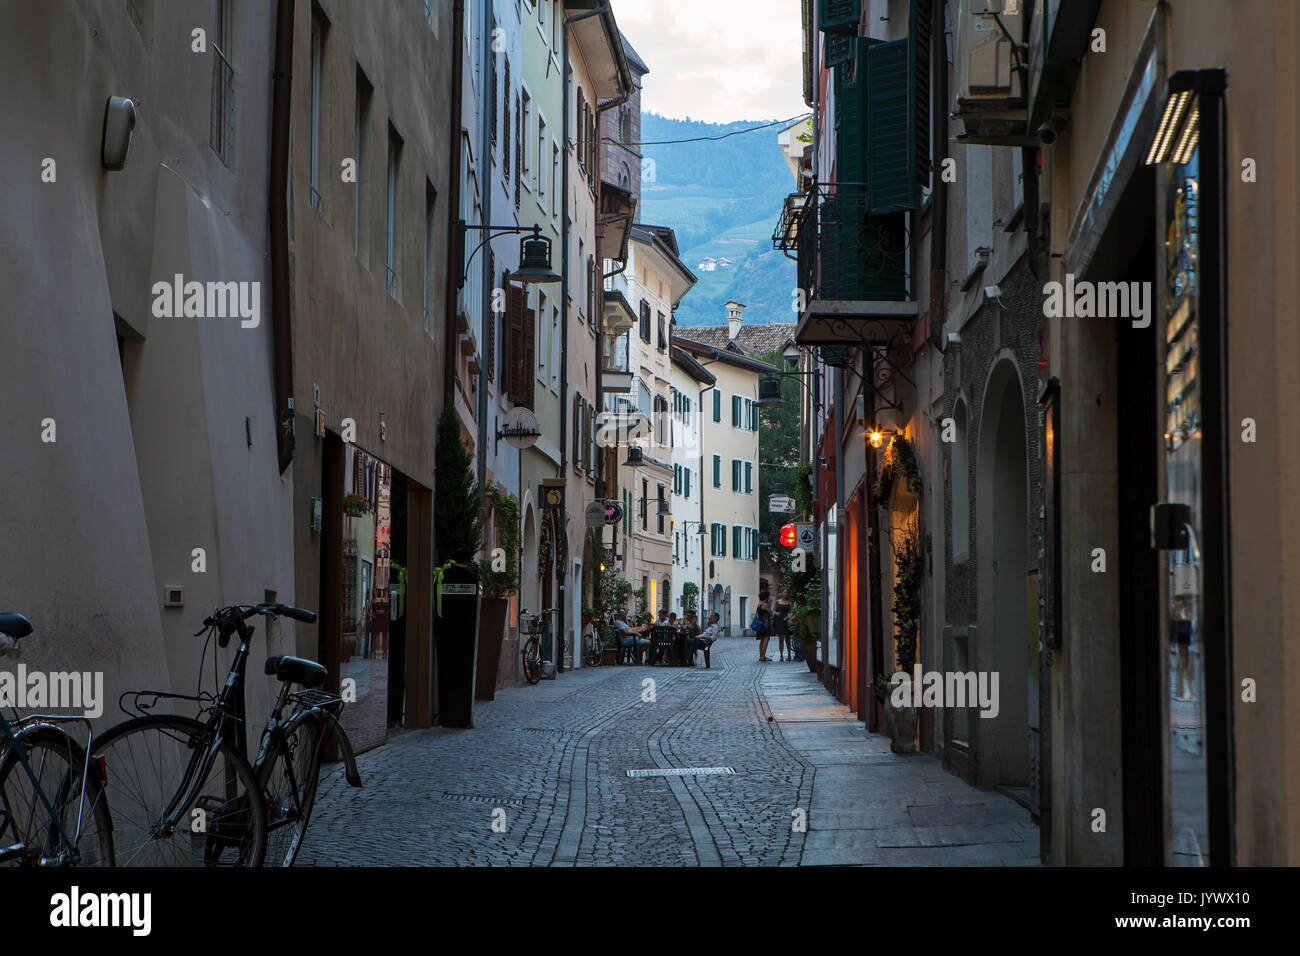 BOLZANO, ITALY - JUNE 24, 2017: Bolzano is a city in the South Tyrol province of north Italy, set in a valley amid hilly vineyards. - Stock Image